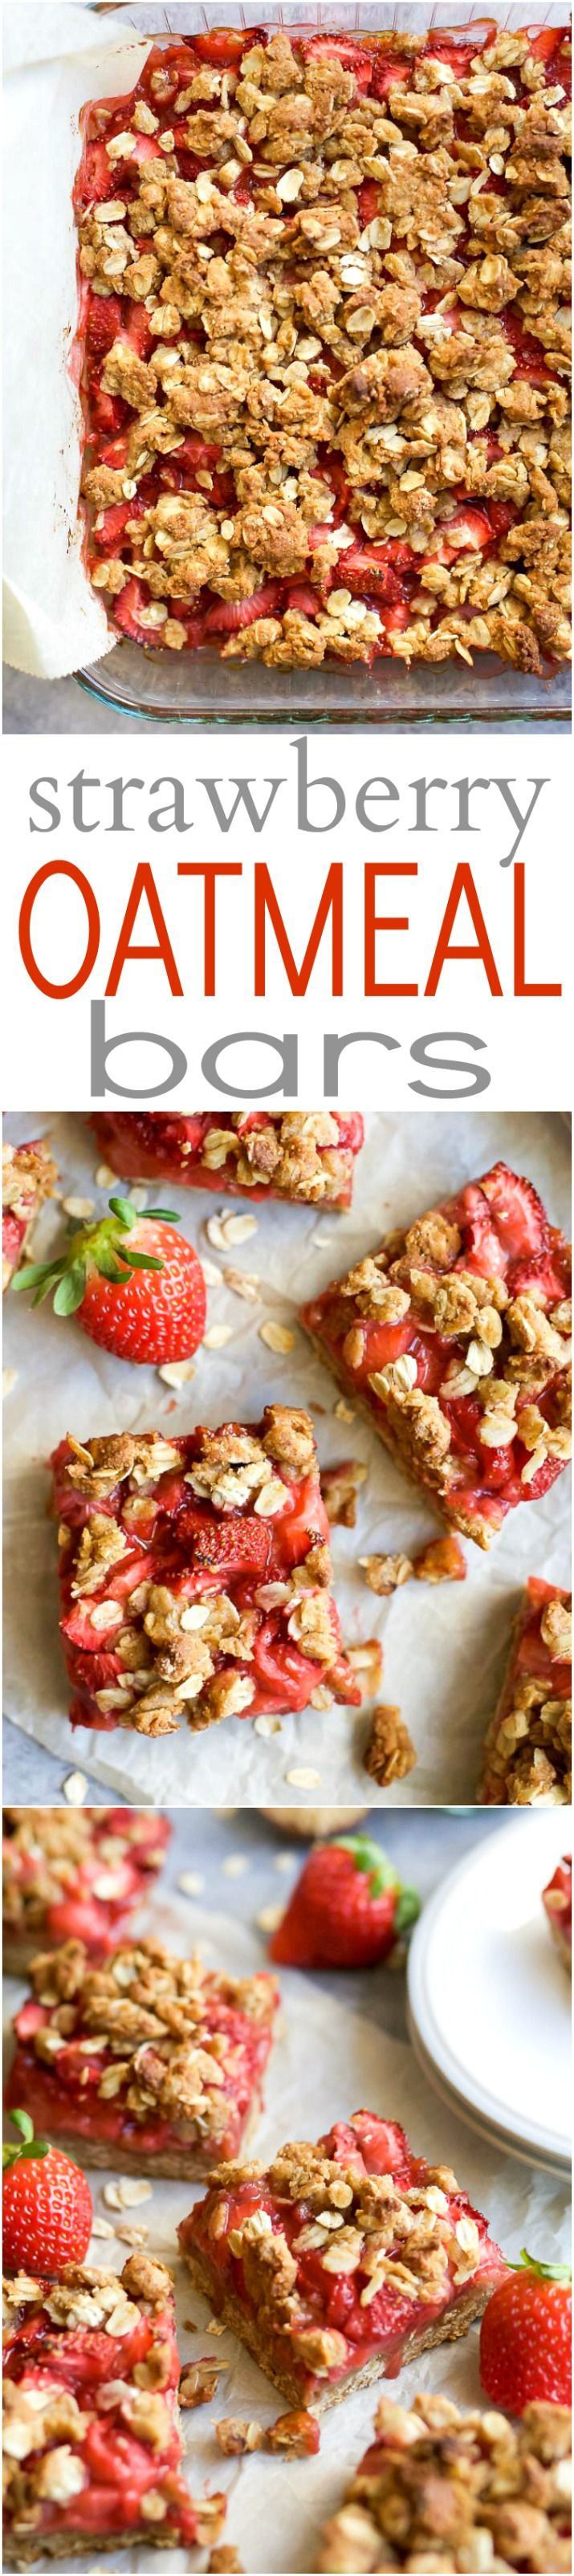 Healthy STRAWBERRY OATMEAL BARS filled with juicy strawberries and a buttery crumble topping for only 132 calories a serving! Serve it for breakfast, dessert, or eat it as a snack! Just make it! | joyfulhealthyeats.com: